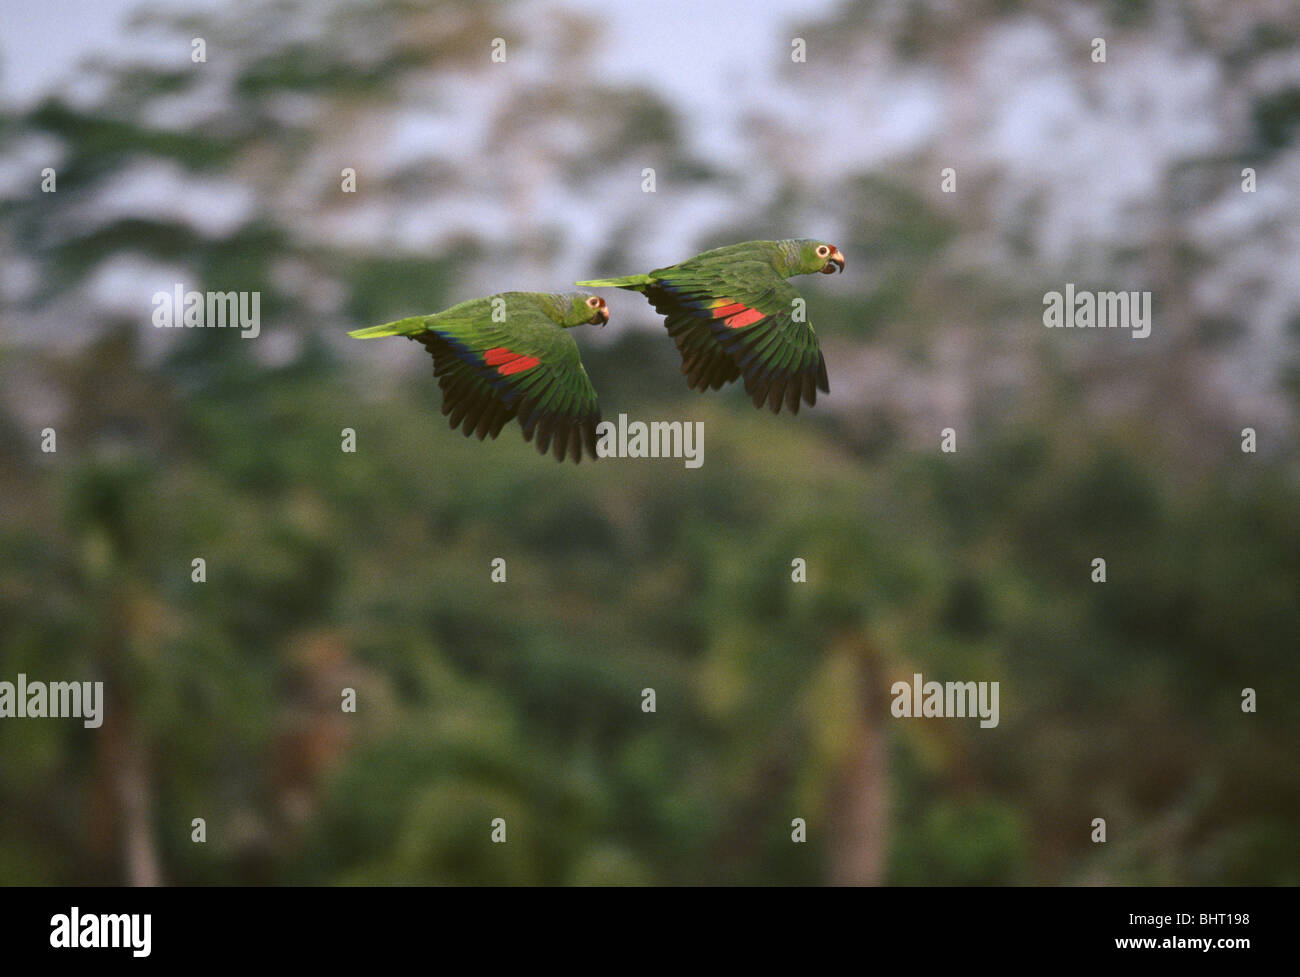 Two Red-lored Parrots flying in pair over the rainforest of Punta Patino nature reserve in Darien province, Republic - Stock Image